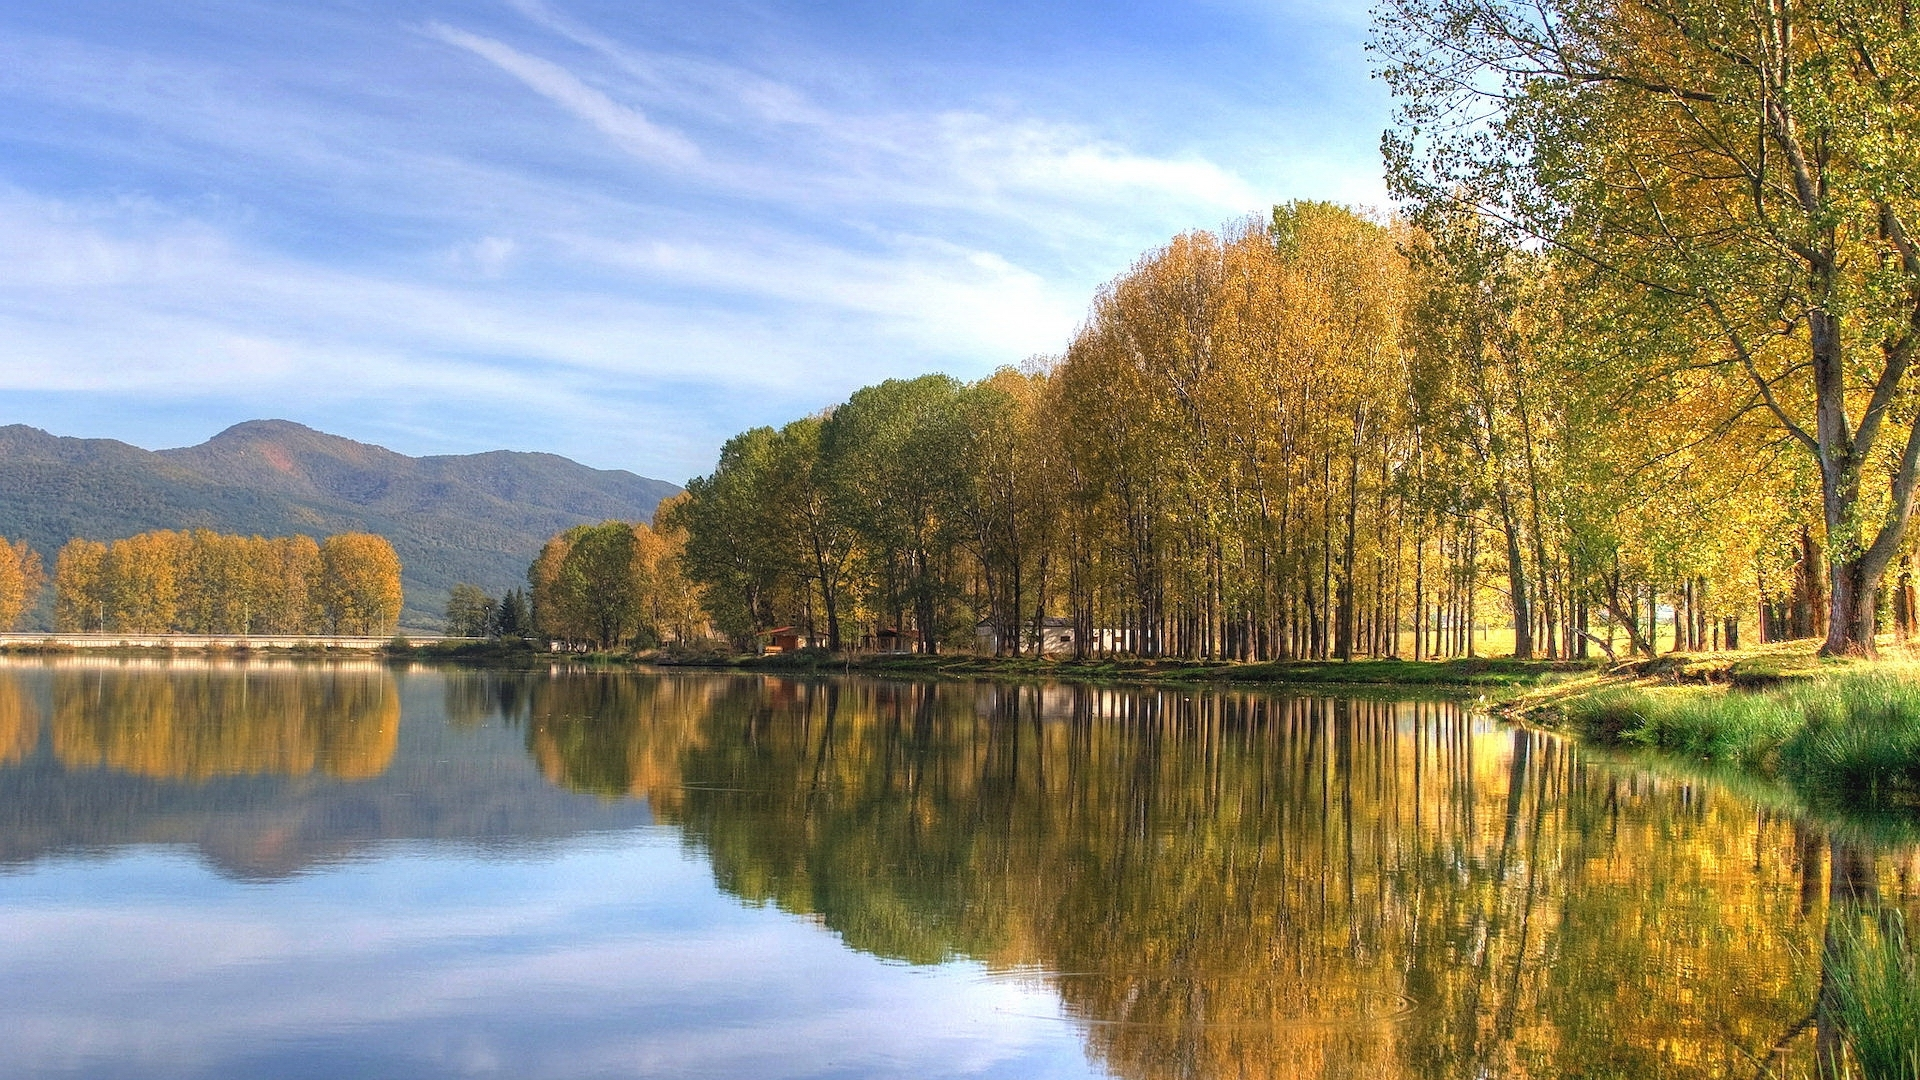 30162 download wallpaper Landscape, Autumn, Lakes screensavers and pictures for free